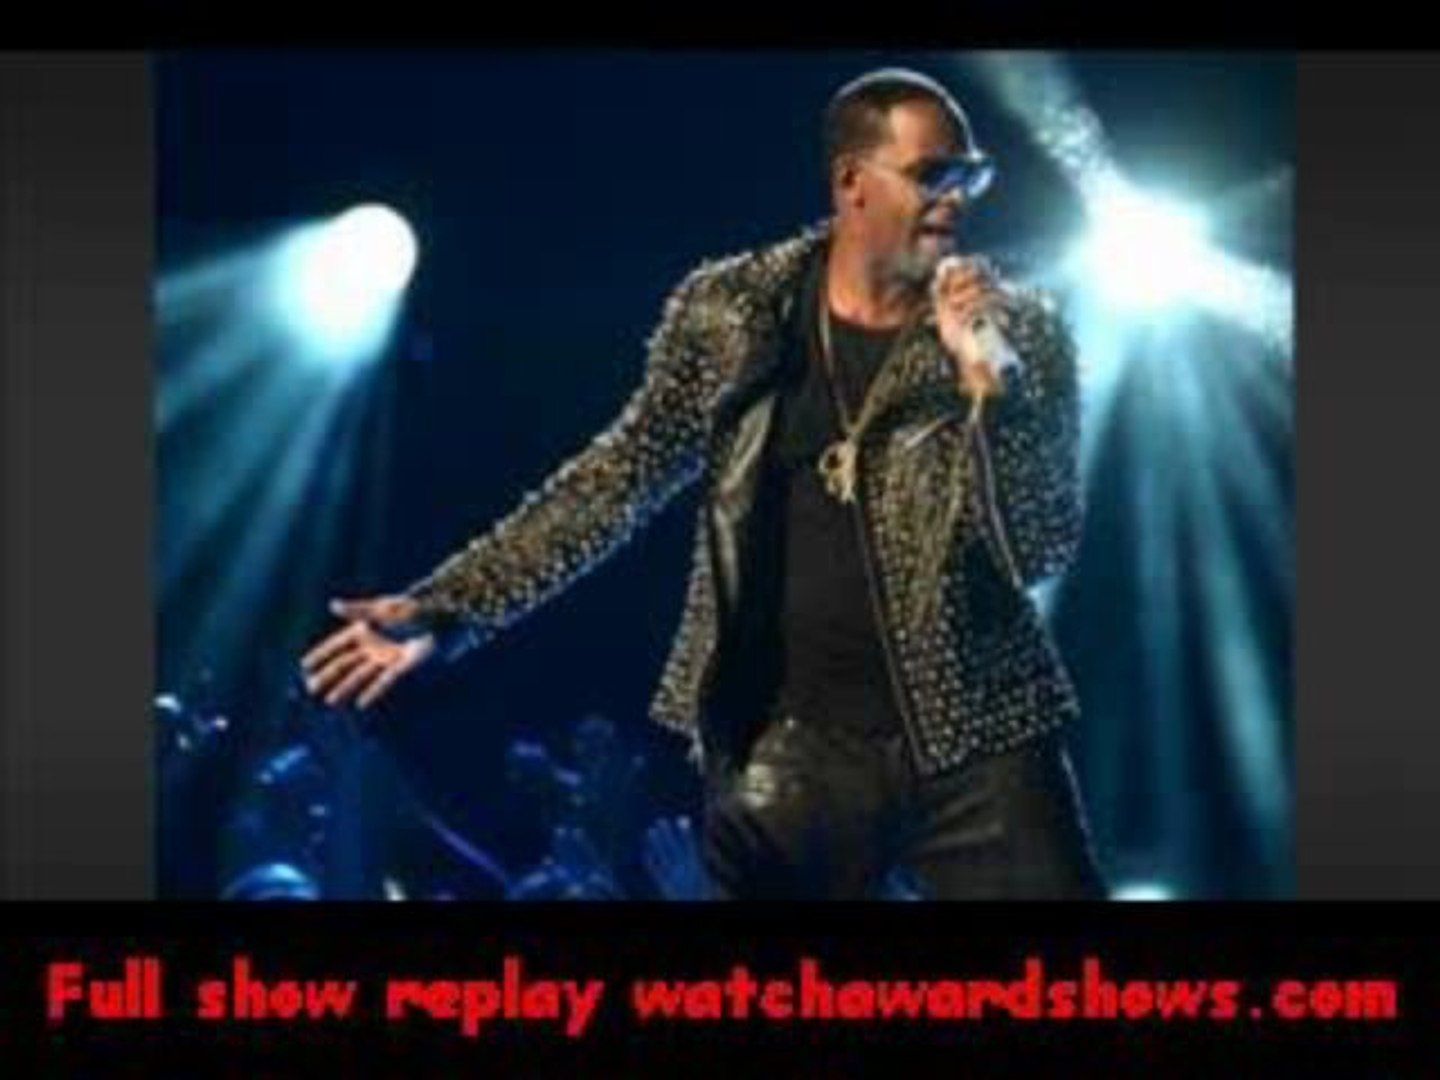 R  Kelly live performance BET Awards 2013 Seems Like You're Ready BET  Awards 2013